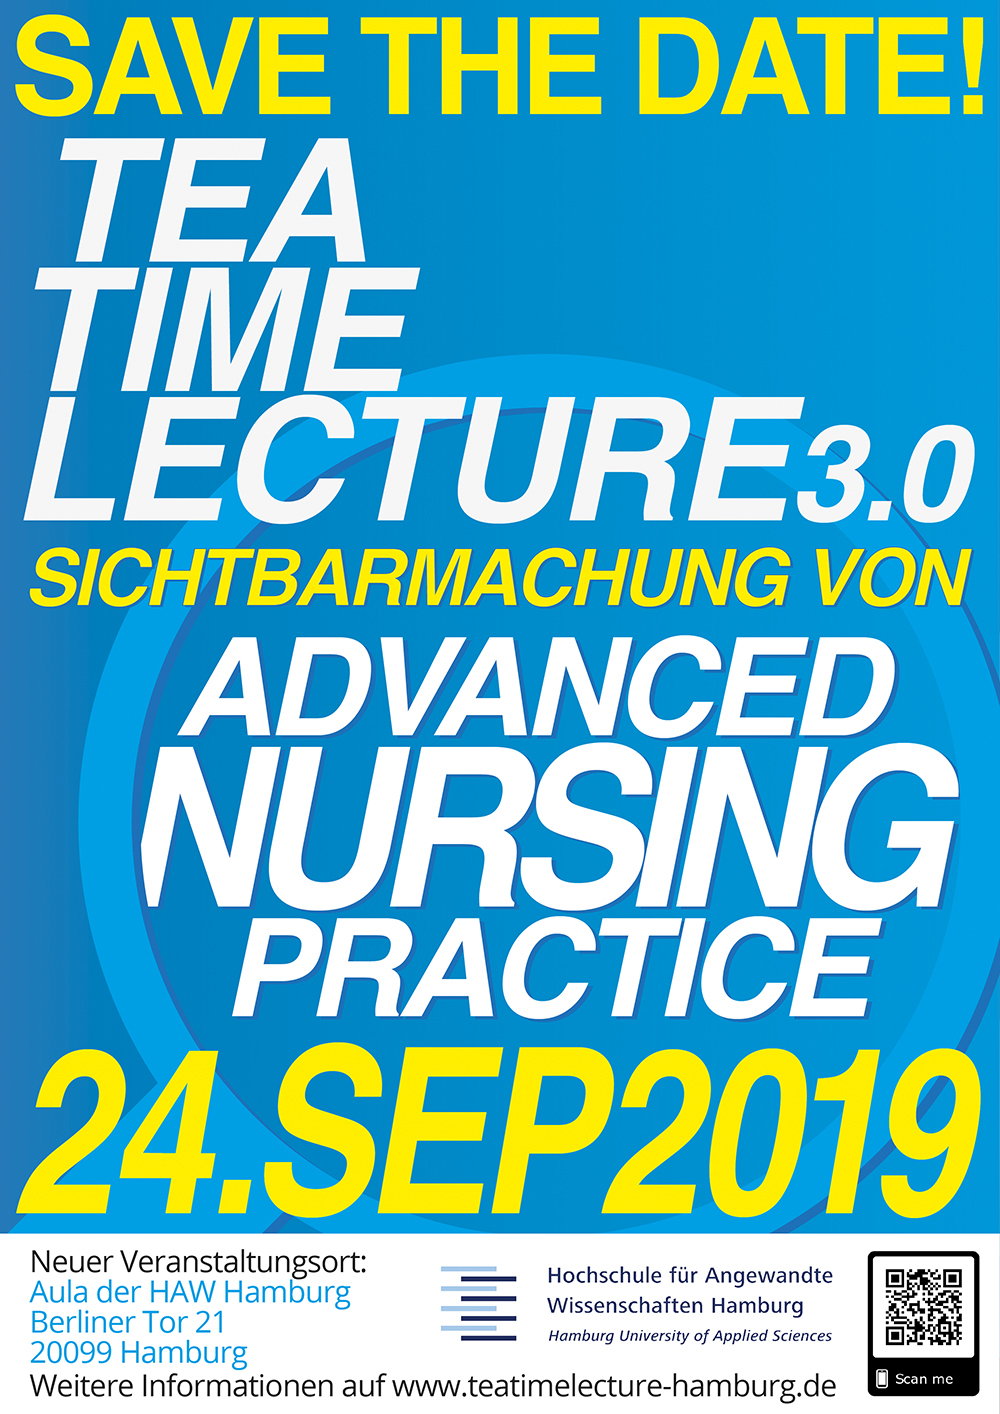 Tea-Time-Lecture (TTL 3.0)  Sichtbarmachung von Advances Nursing Practic @ Aula der HAW